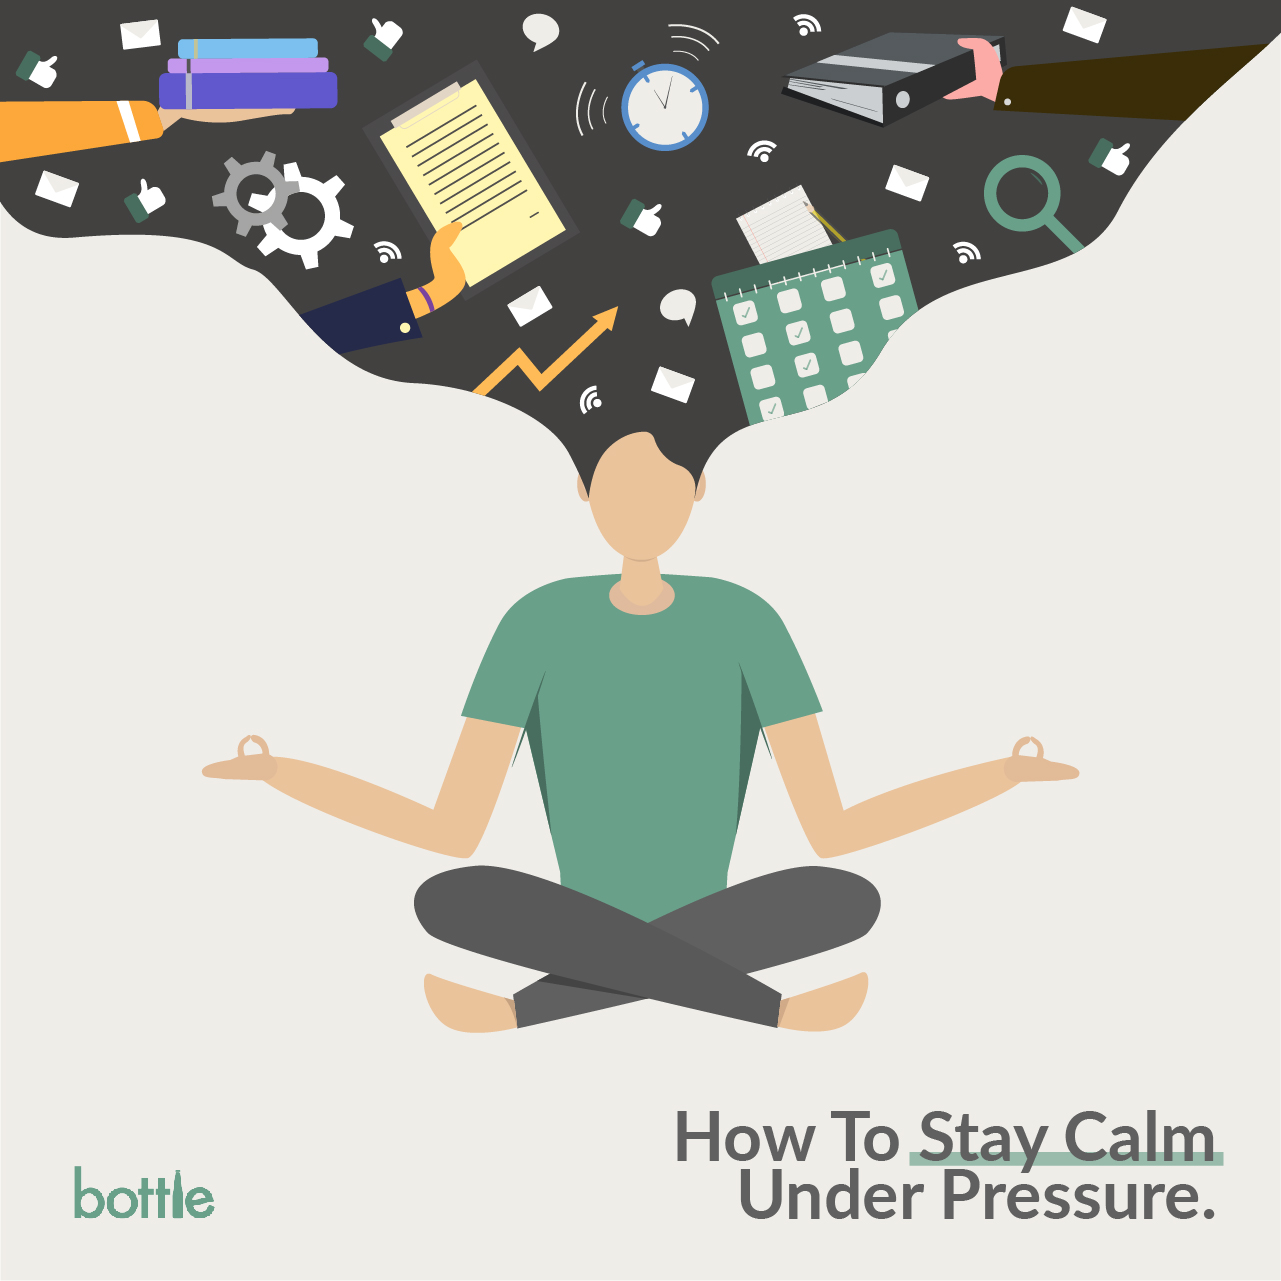 How To Stay Calm Under Pressure?